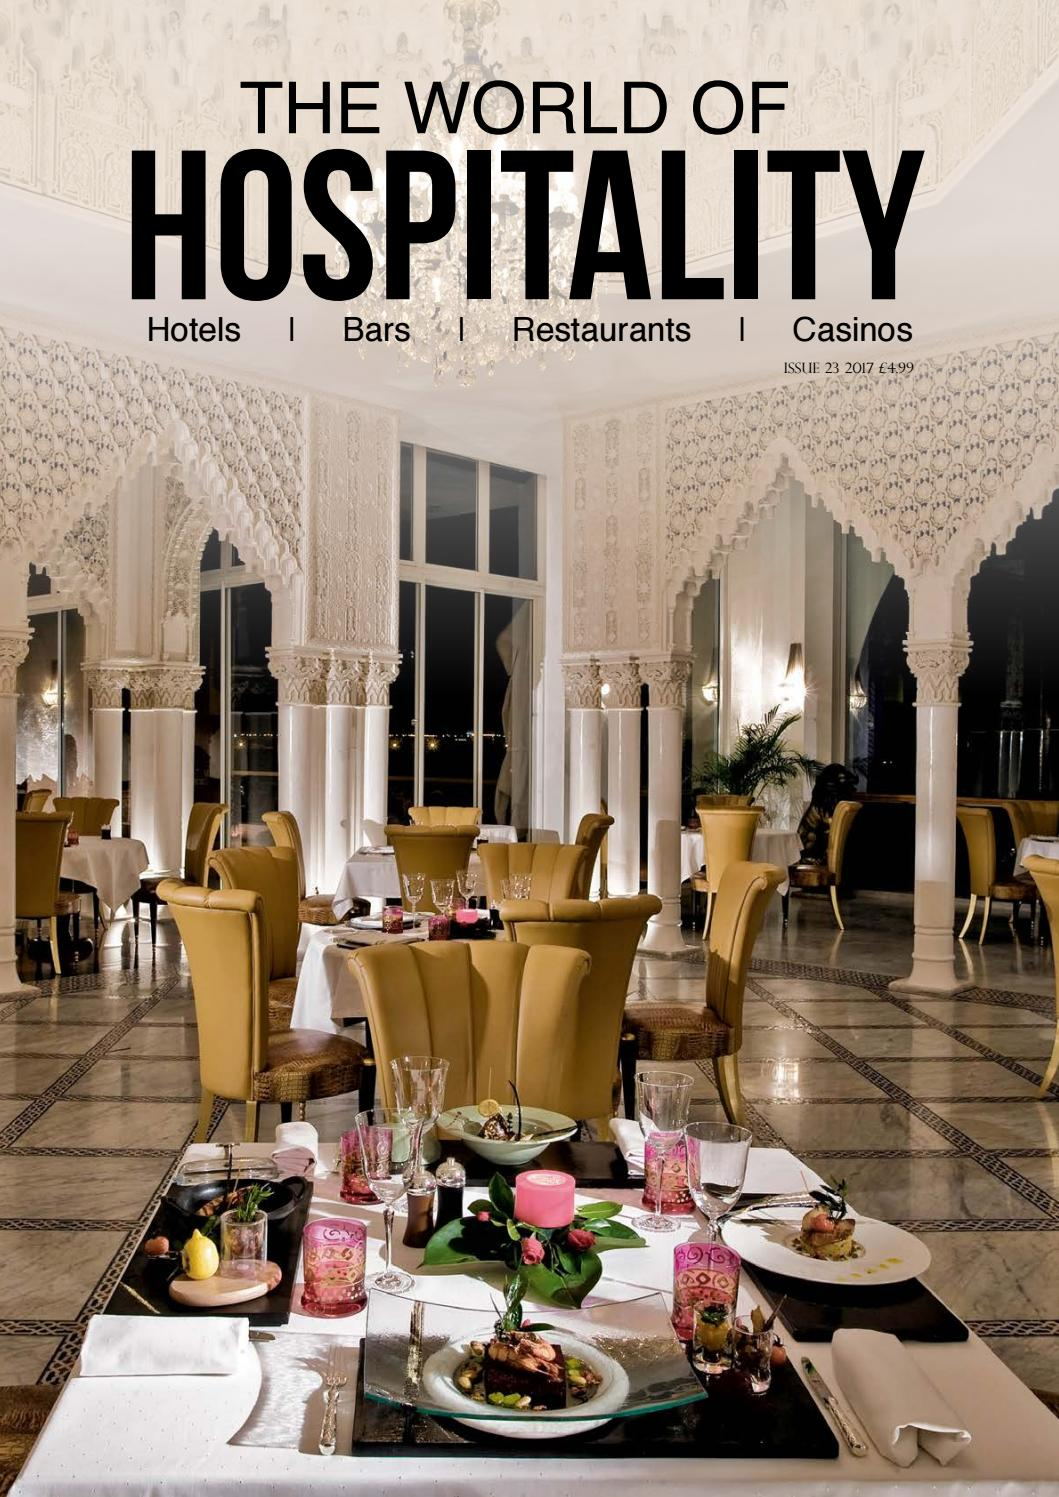 The World of Hospitality - Issue 23 2017 by The World Of